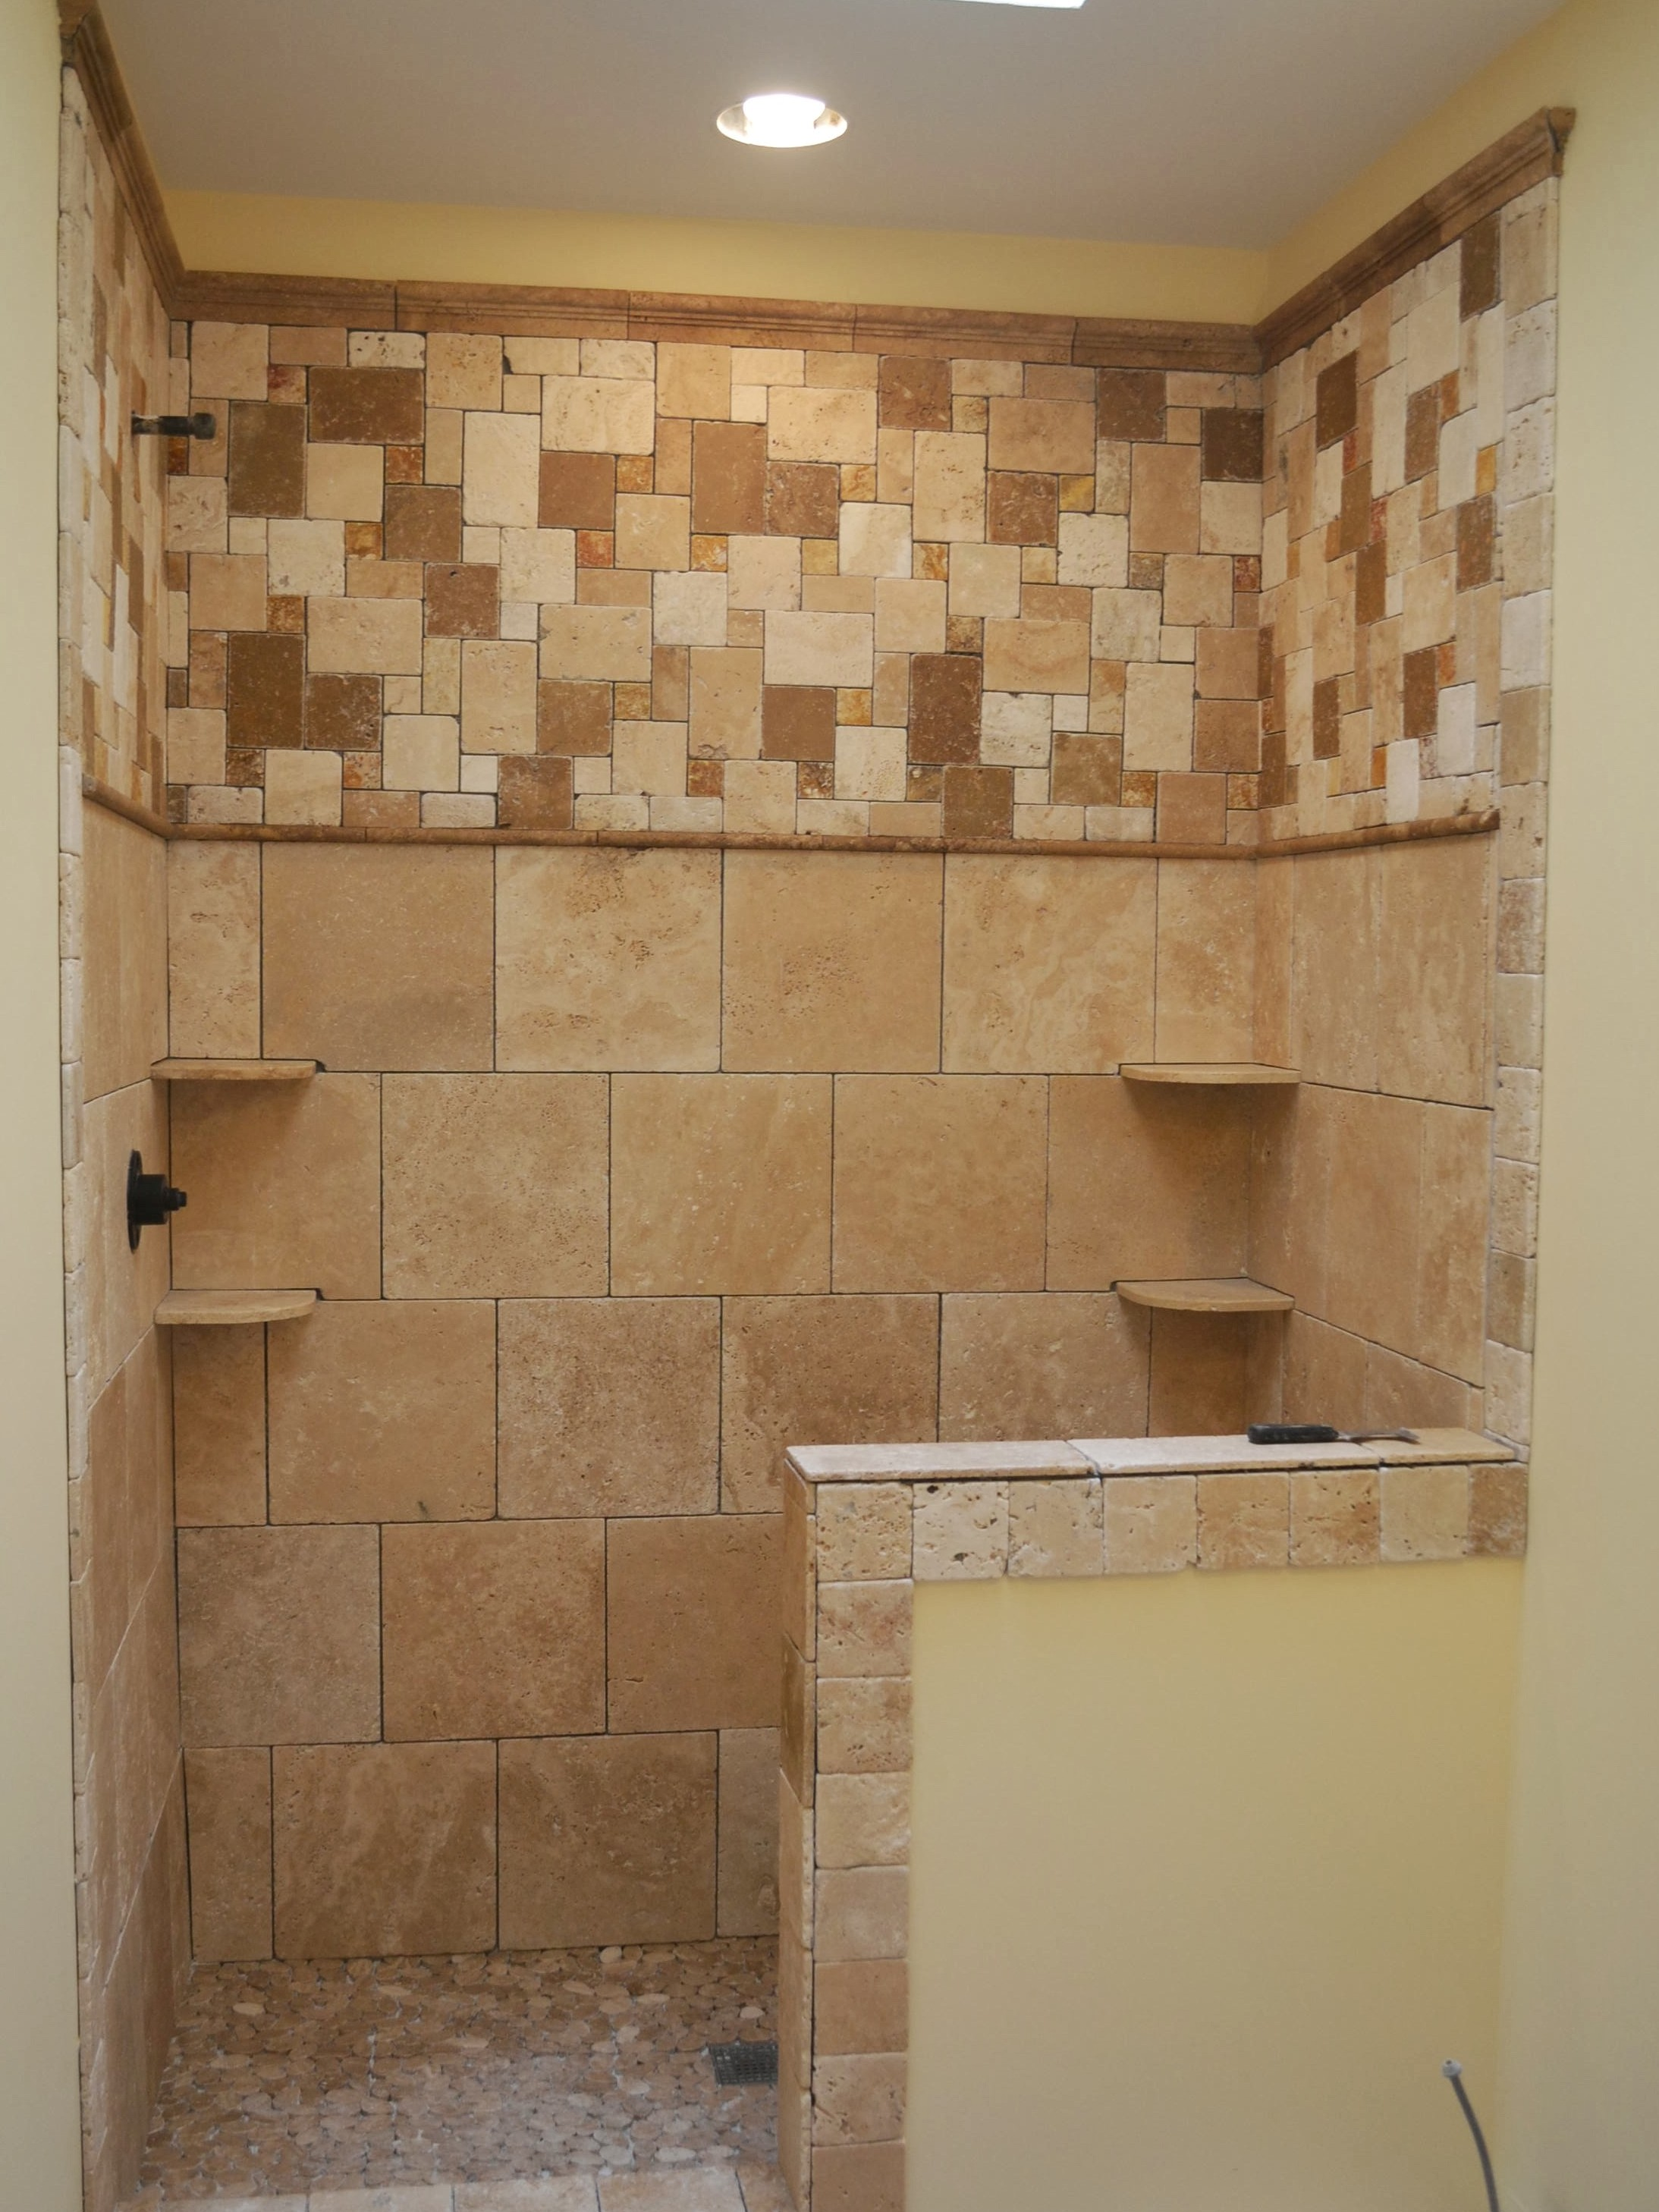 How to tile a shower wall pro construction guide Best tile for shower walls